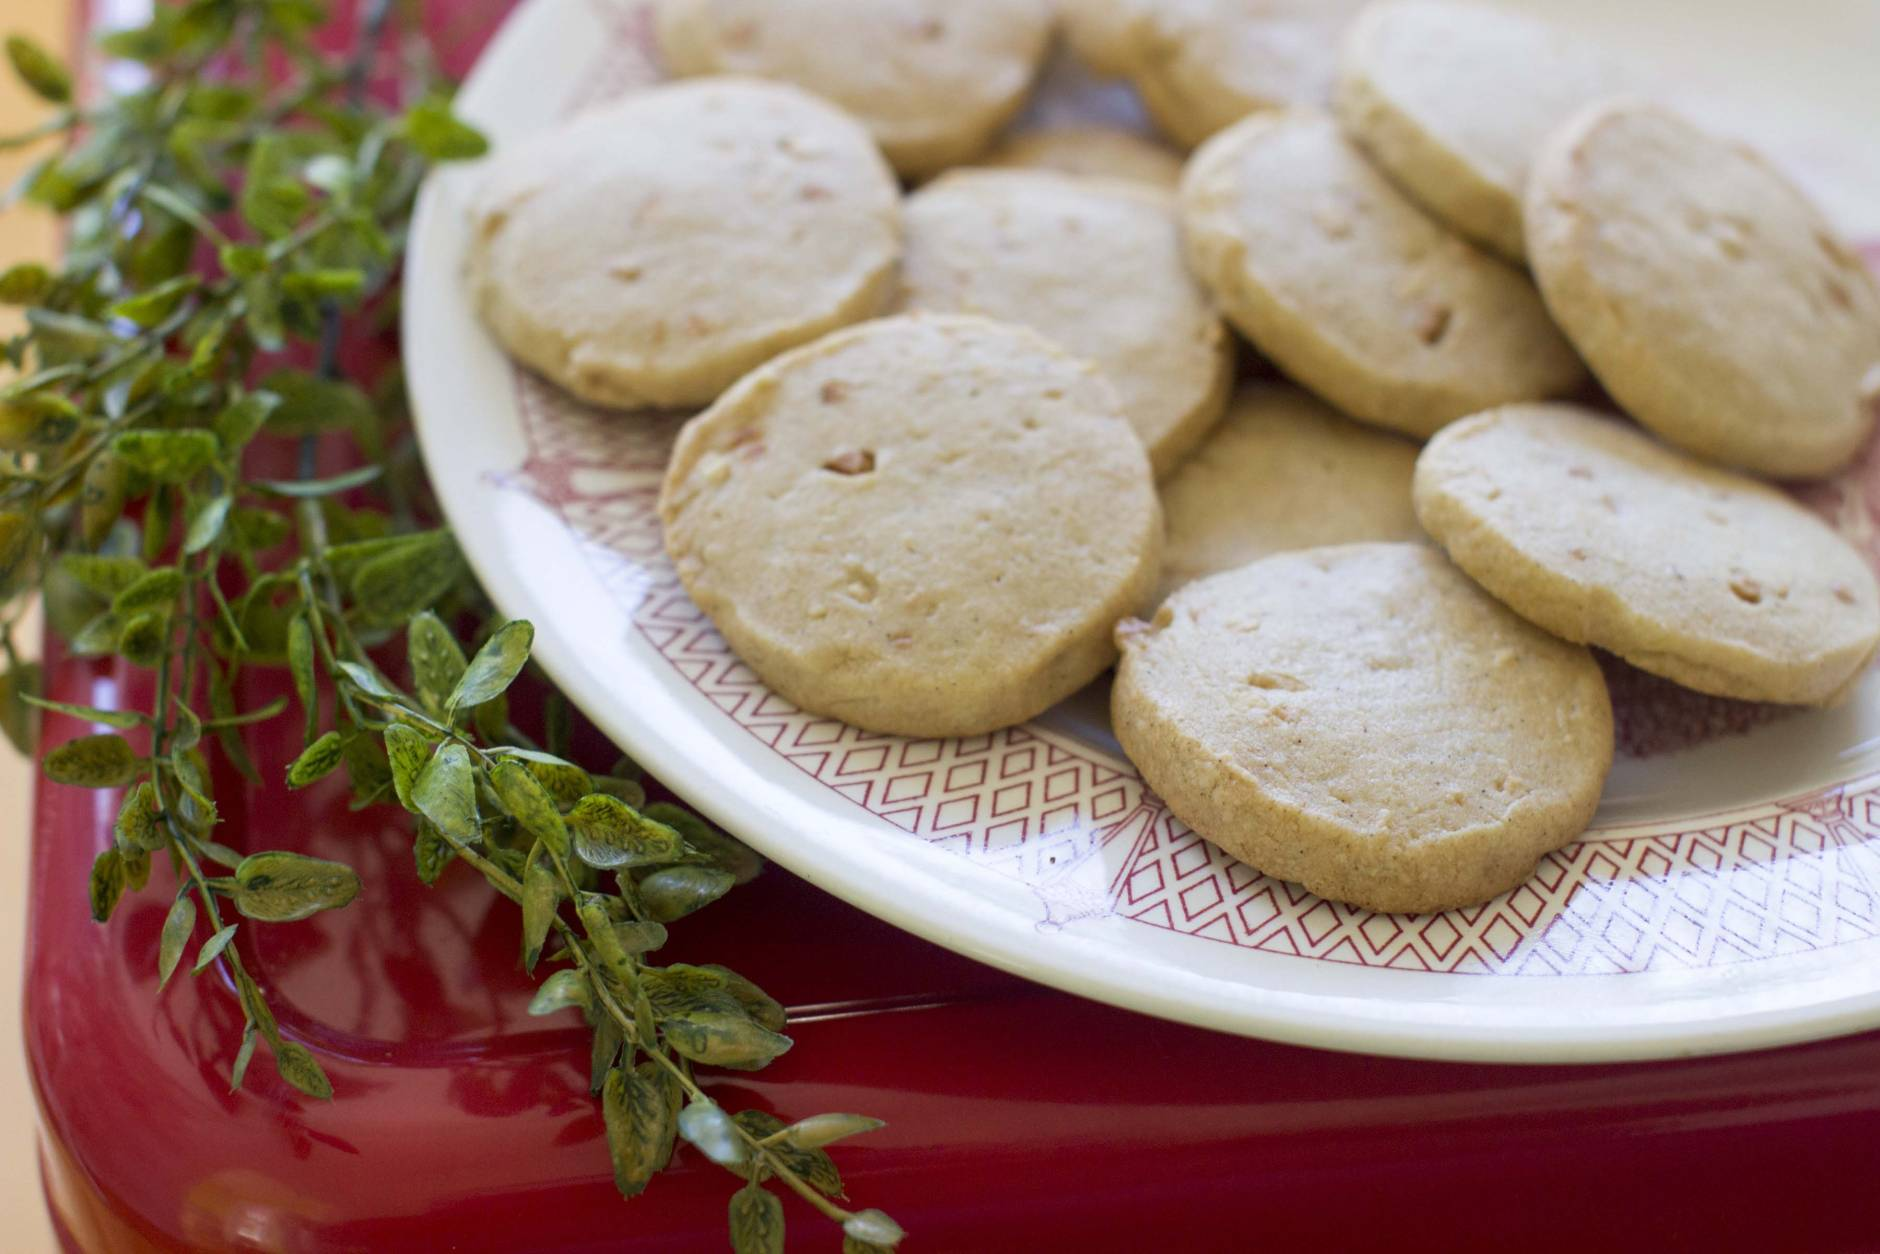 This Nov. 3, 2014, photo shows vanilla refrigerator cookies in Concord, N.H. These easy refrigerator cookies can be prepped ahead, then refrigerated for several days or frozen for months until the moment is right. (AP Photo/Matthew Mead)